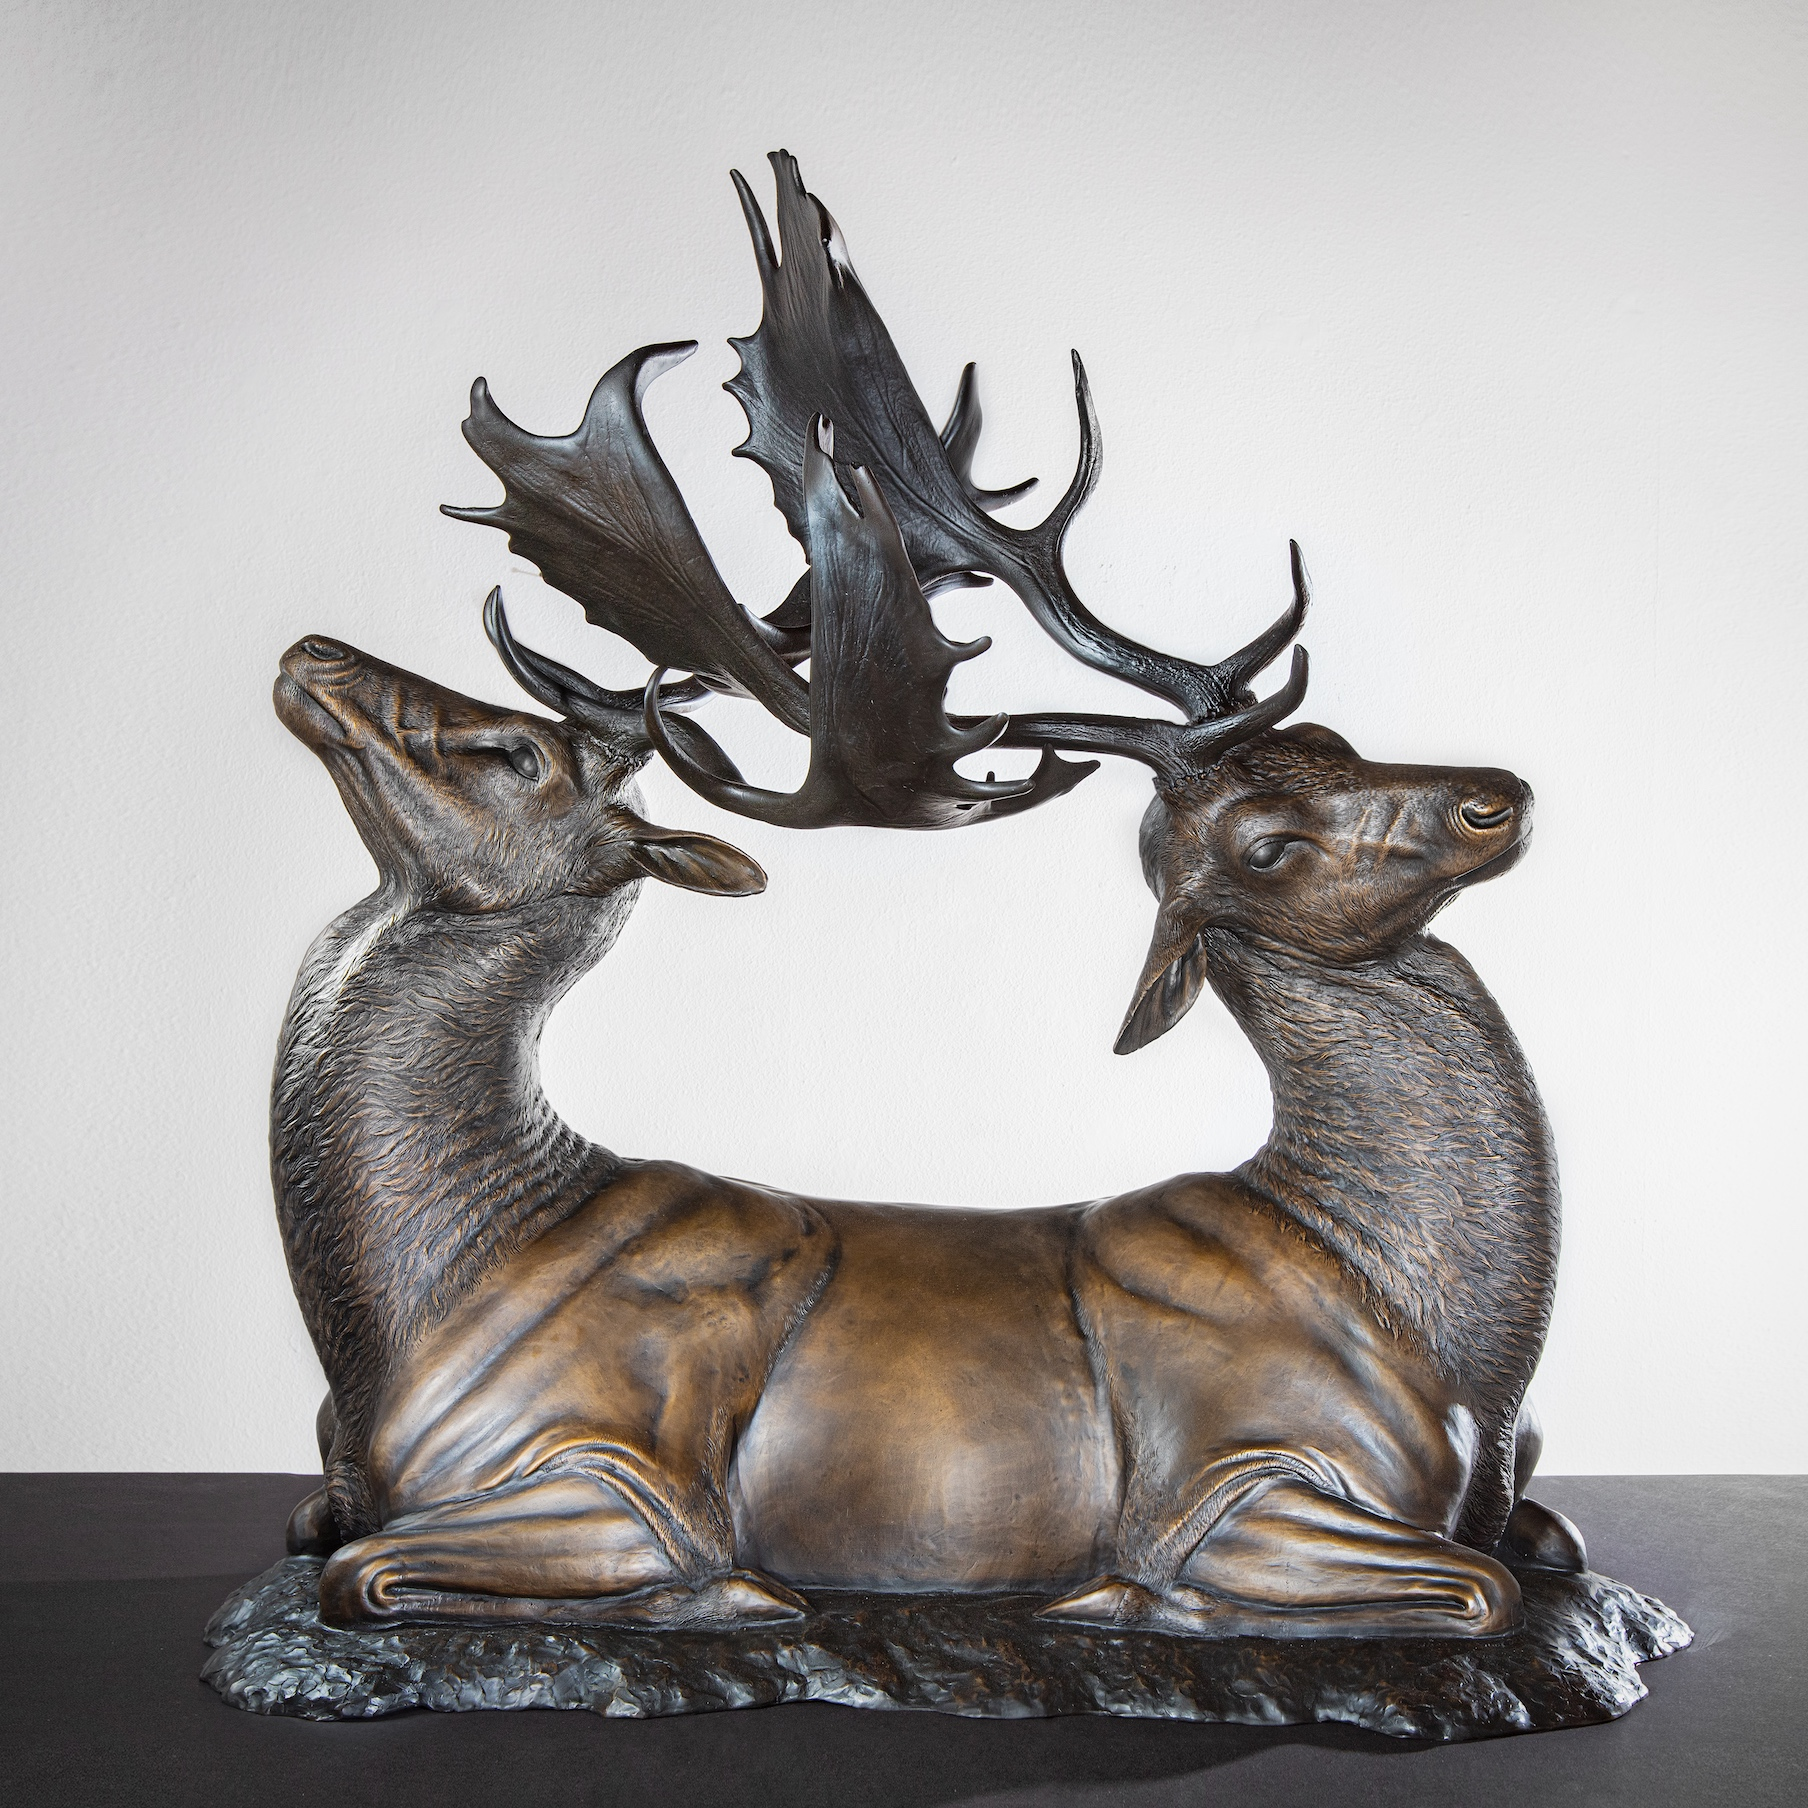 Black Crown Sculpture Unveiled at 42nd & Ingersoll